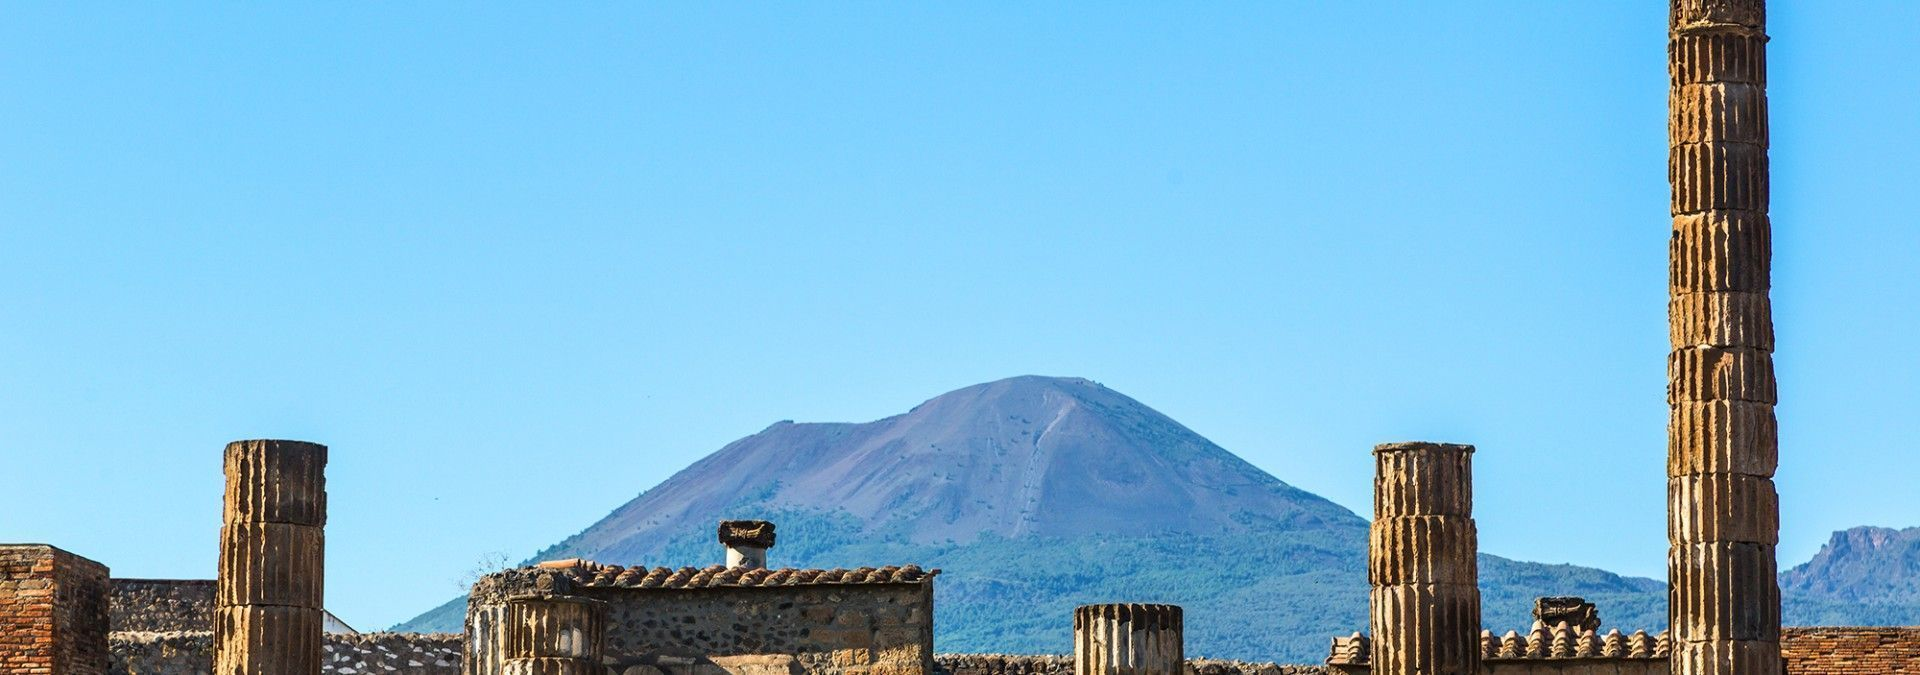 Mount_Vesuvius_and_the_ruins_of_Pompeii.jpg